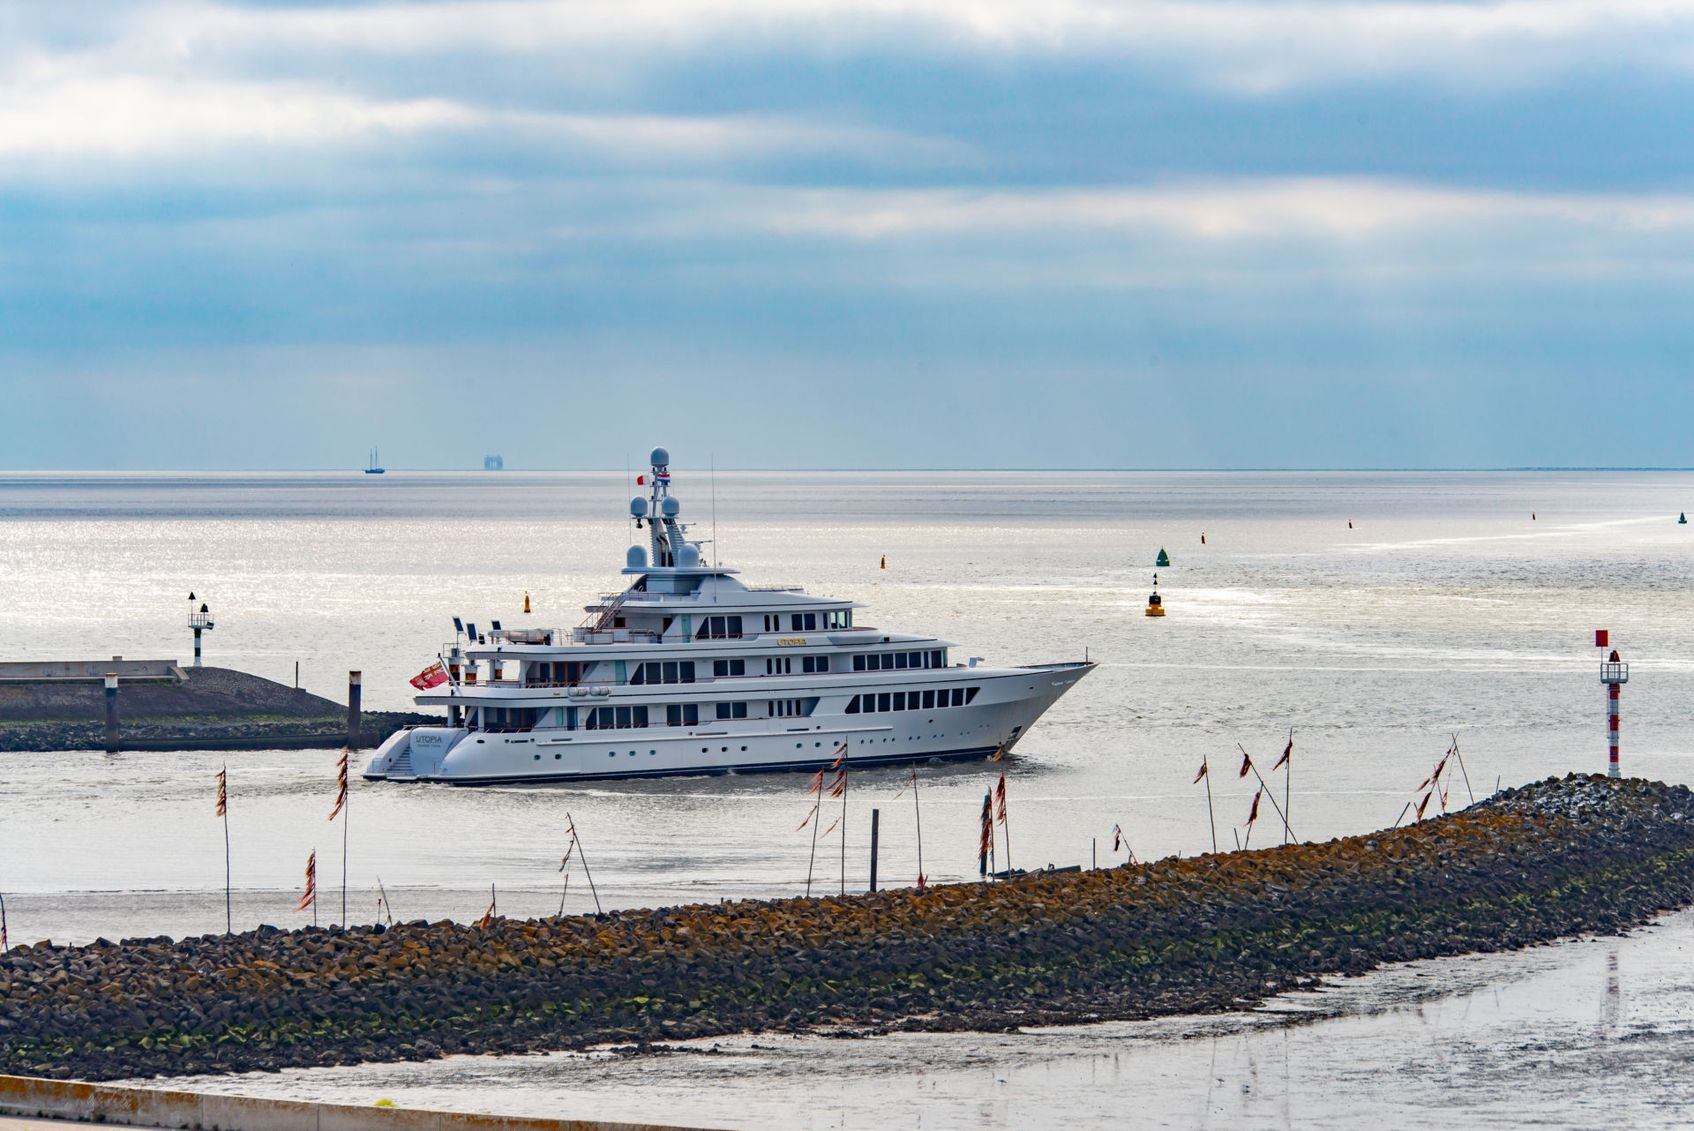 luxury yacht UTOPIA leaves Feadship yard after refit to start charter season in the Mediterranean